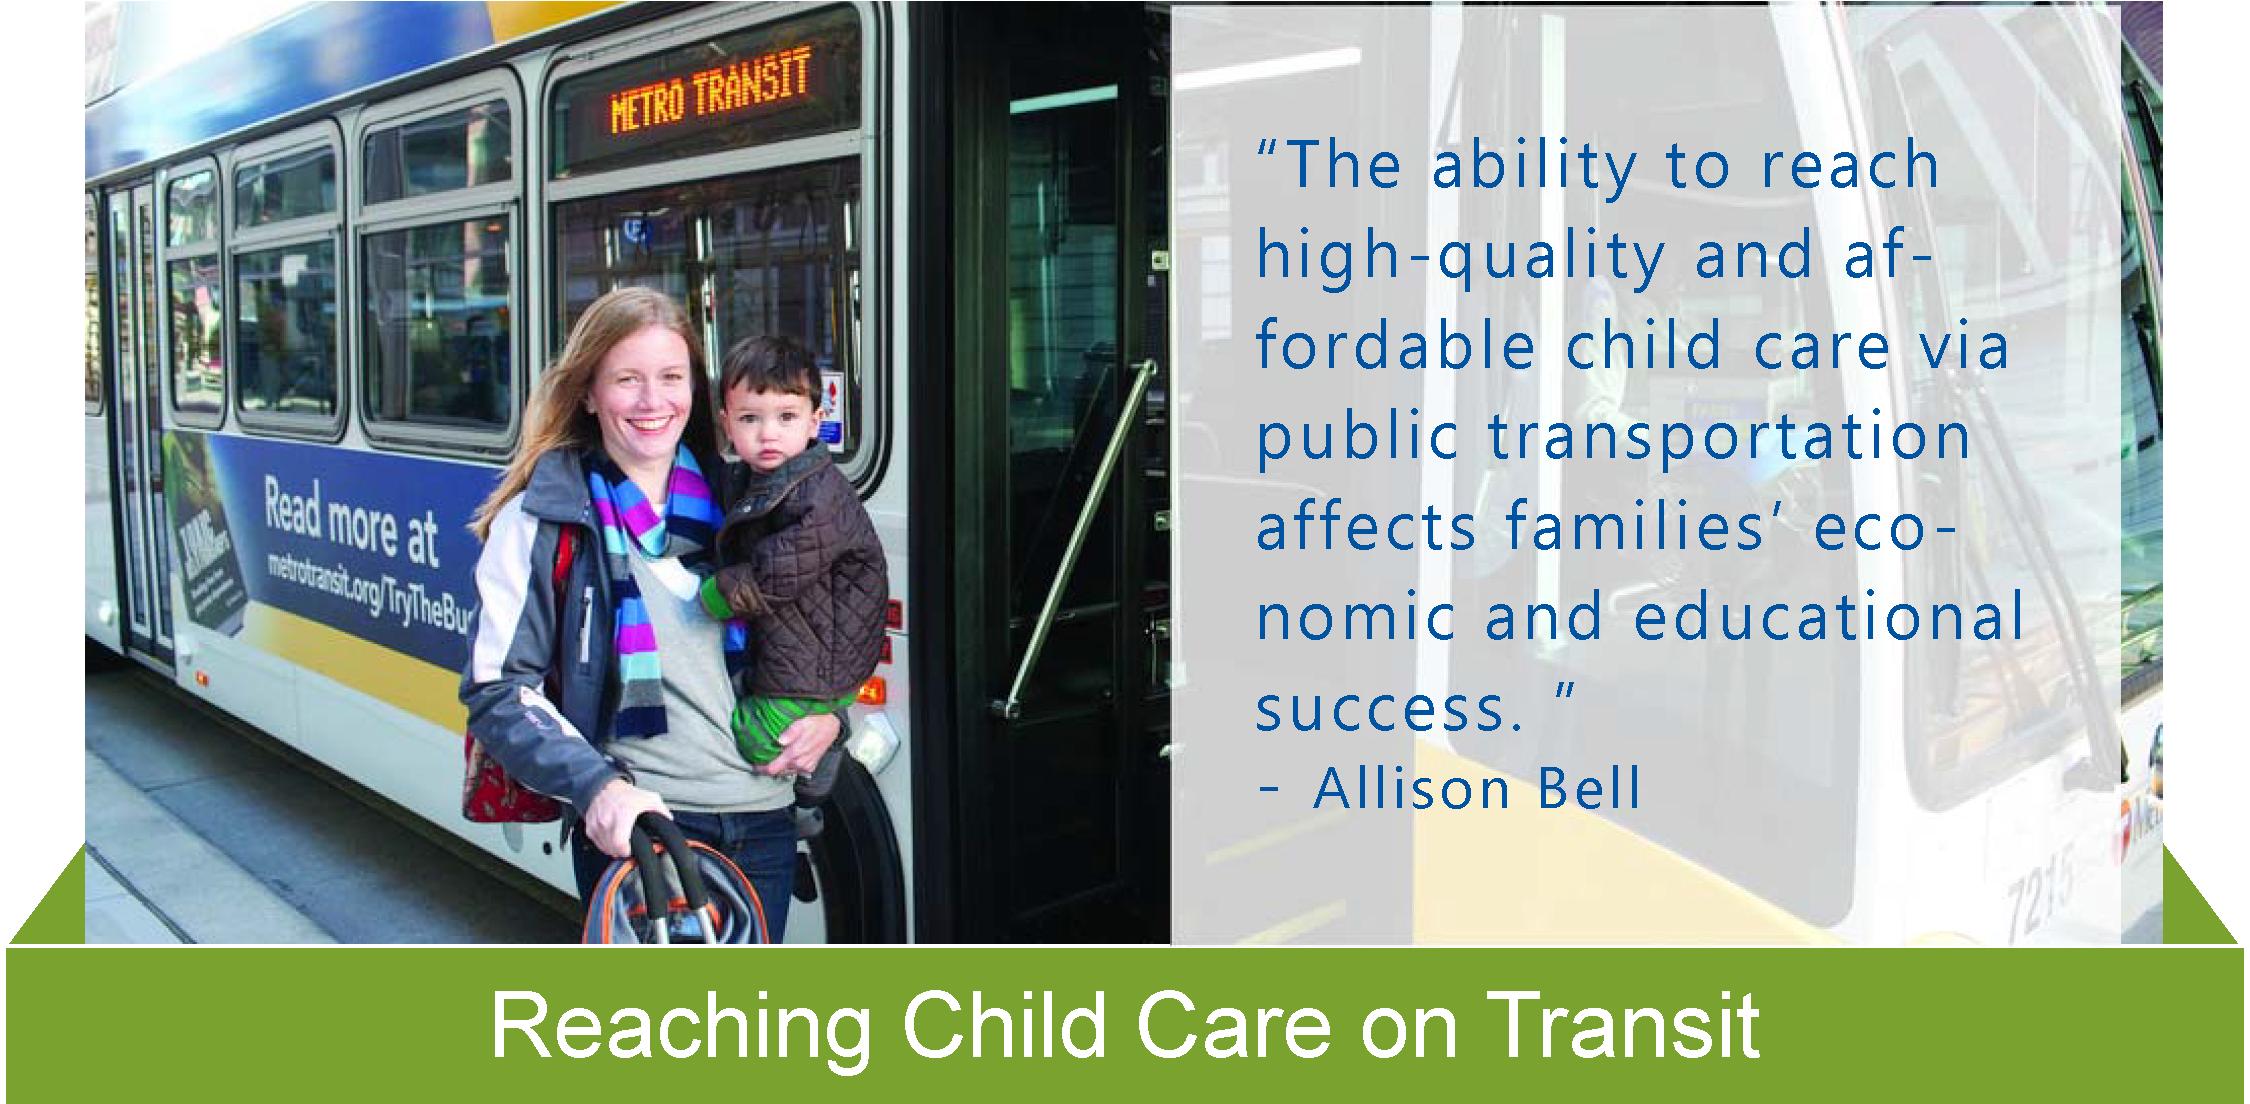 Reaching Childcare via Transit Equity in Action sheet